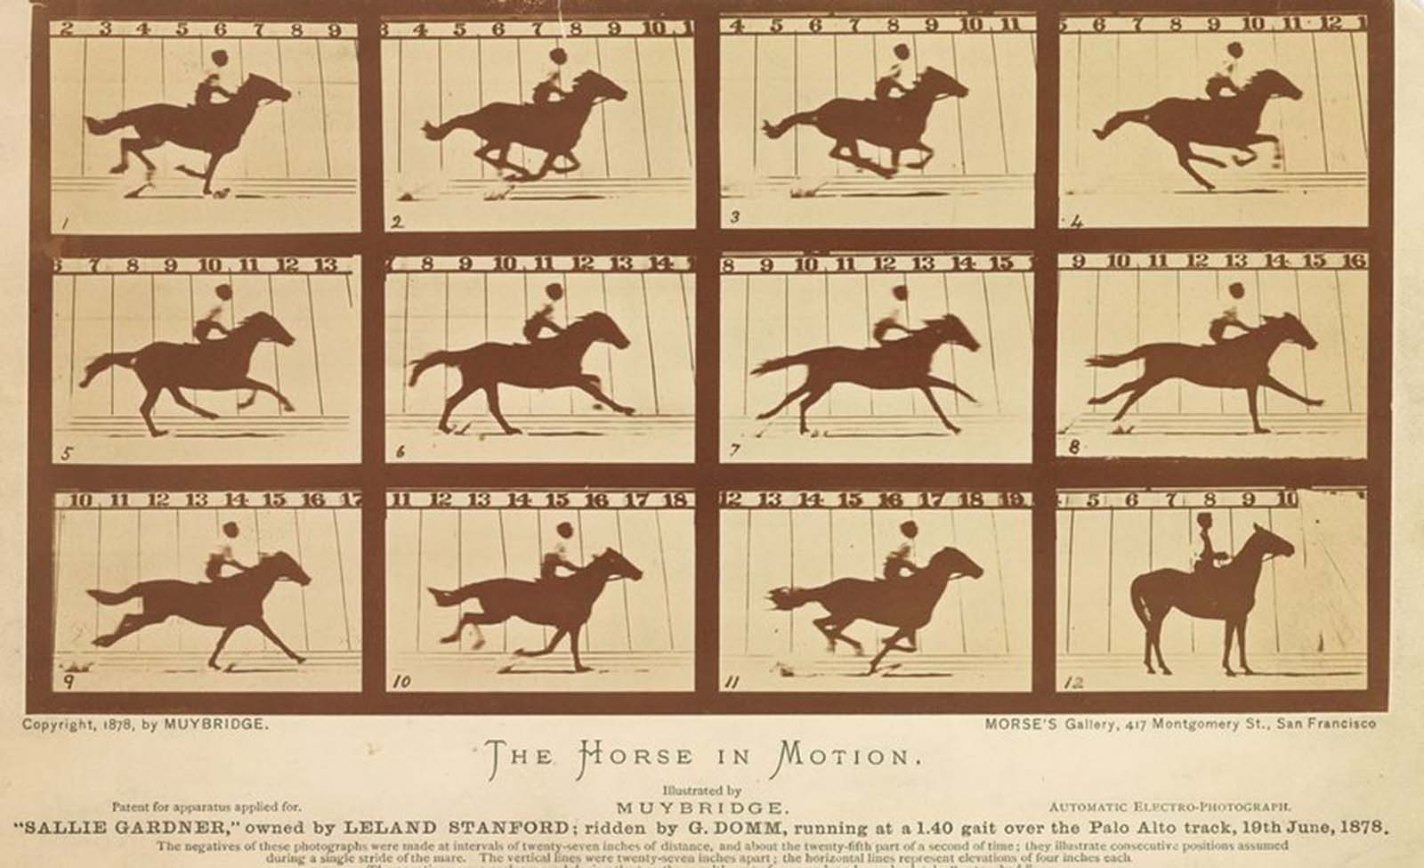 historical photos  of The Horse in Motion, Eadweard Muybridge, 1878